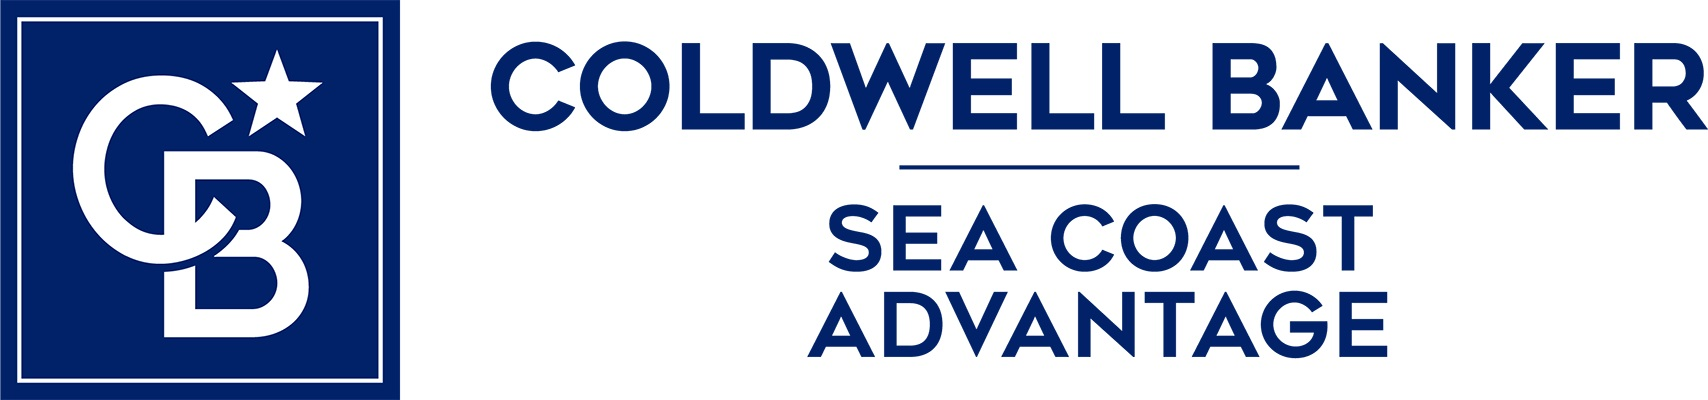 Crystal Watts - Coldwell Banker Sea Coast Advantage Realty Logo